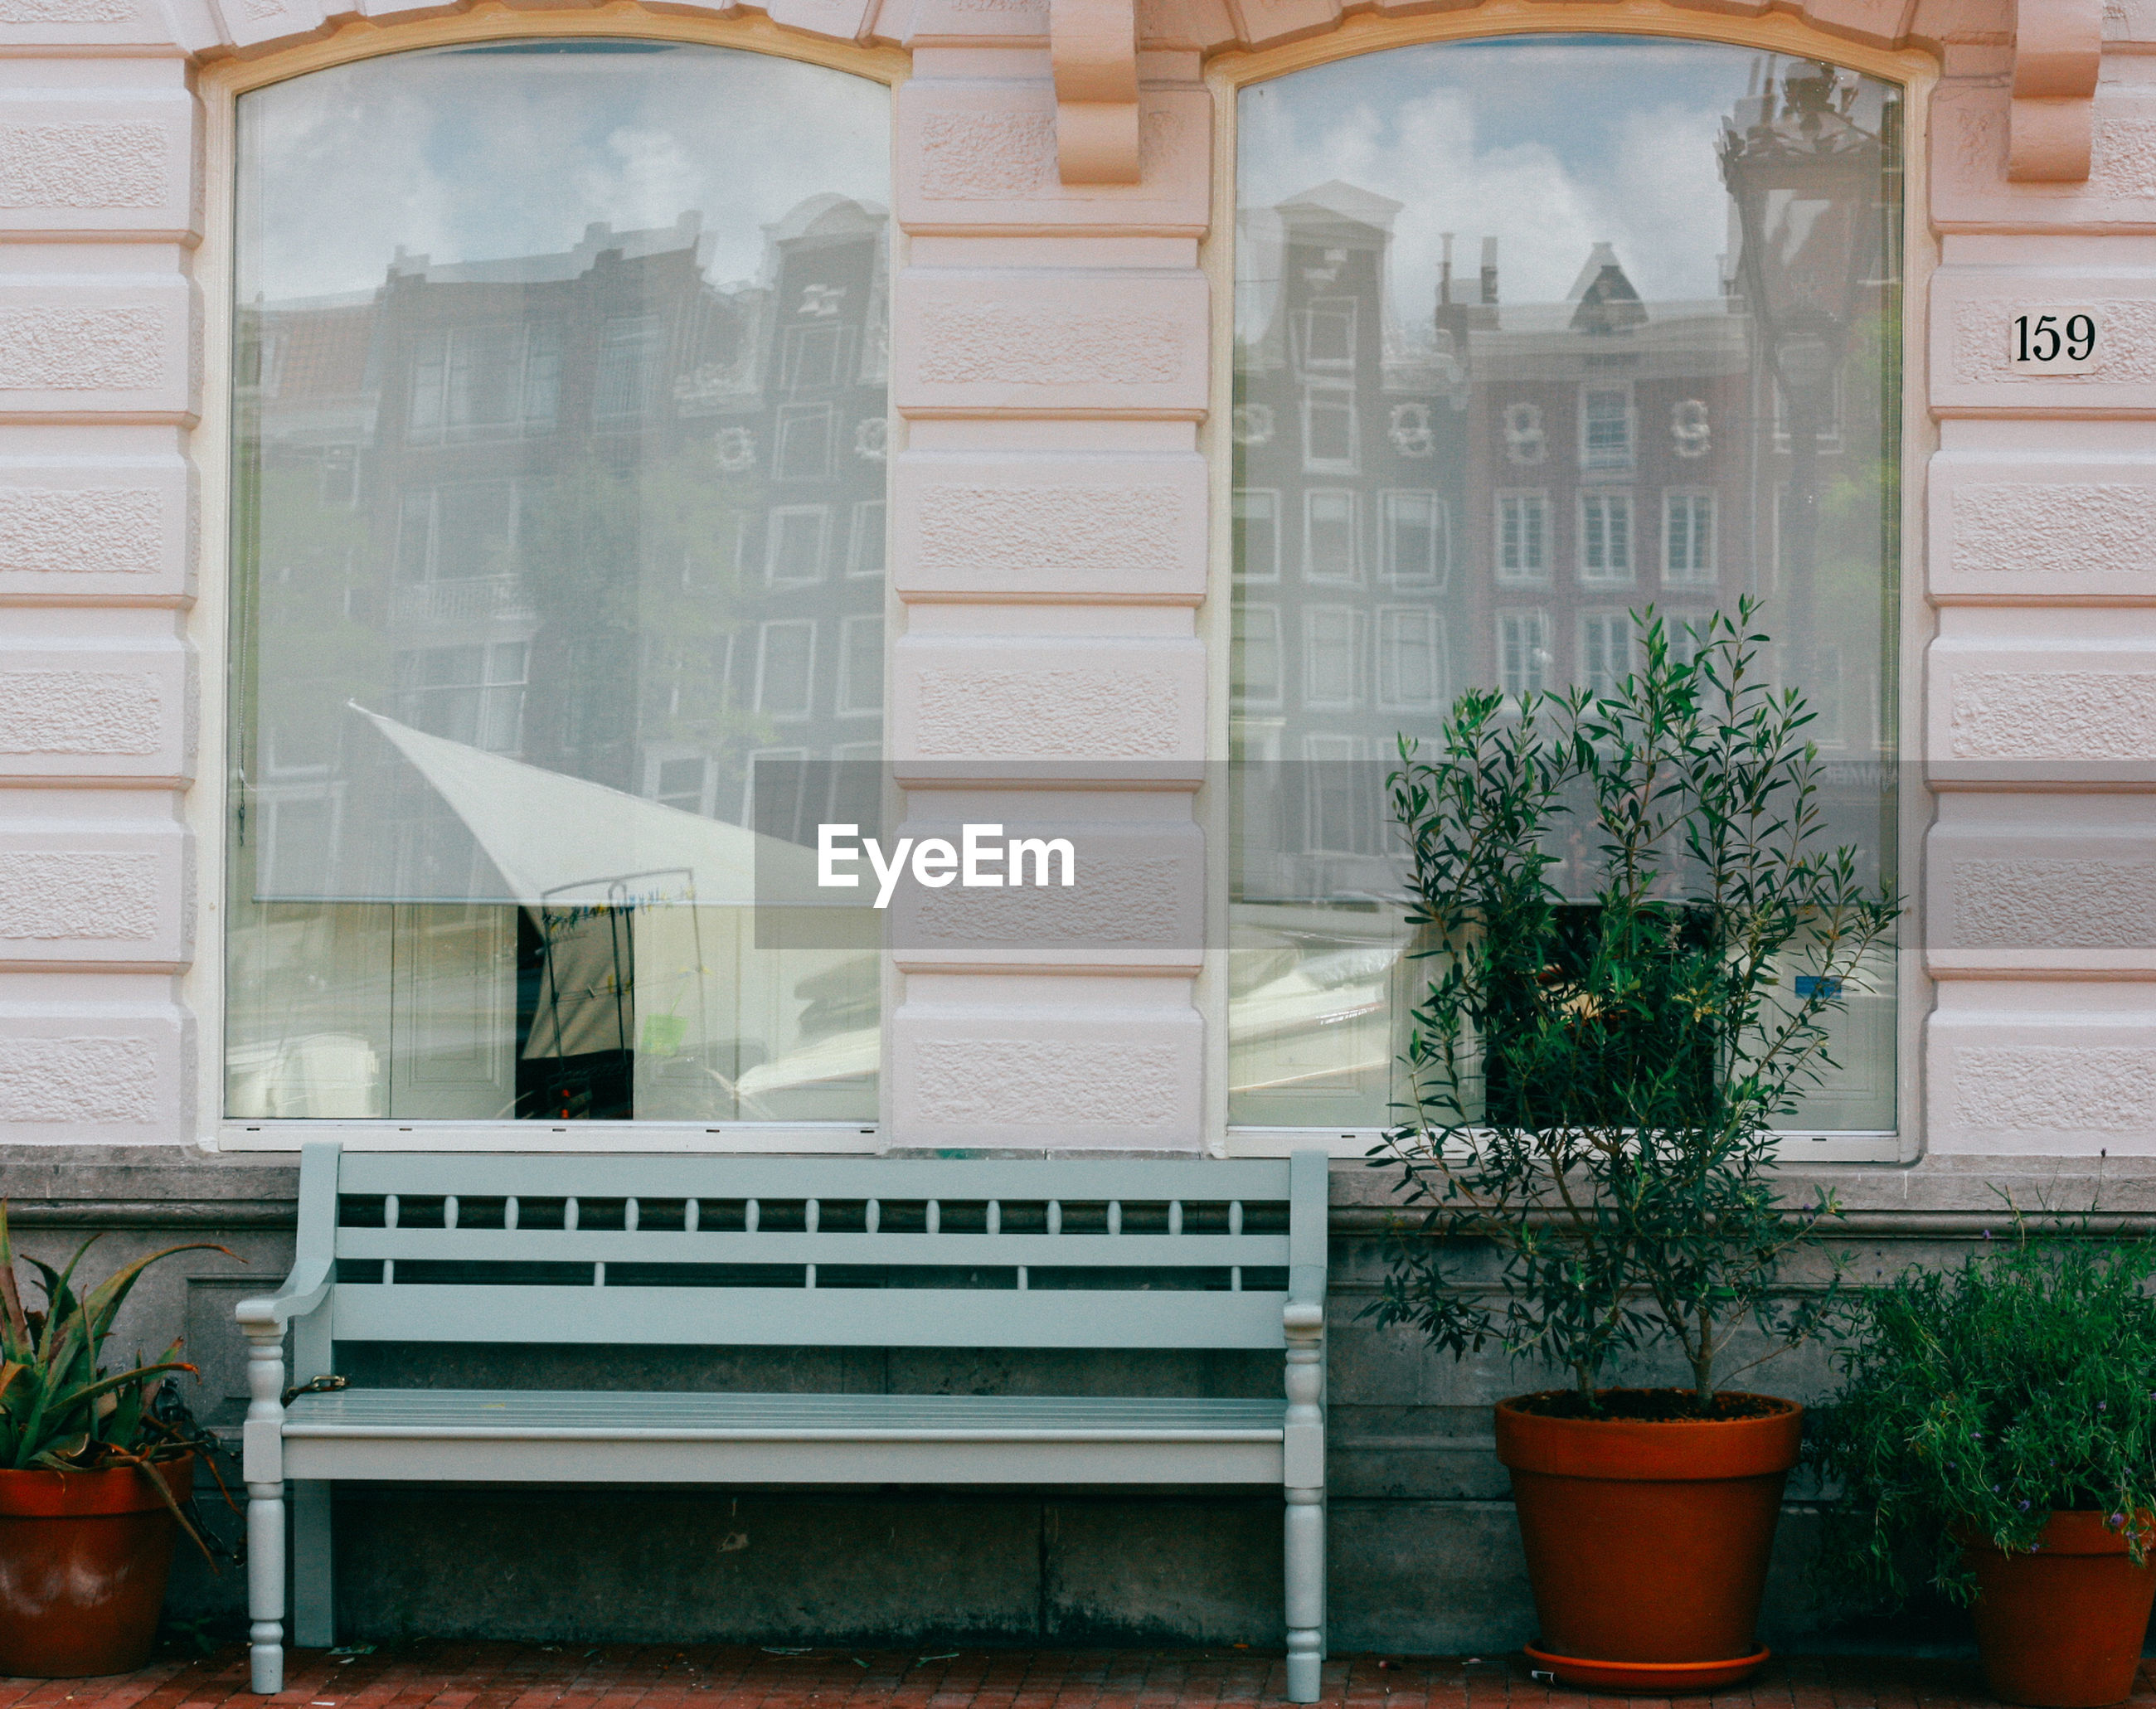 Bench and potted plants by window